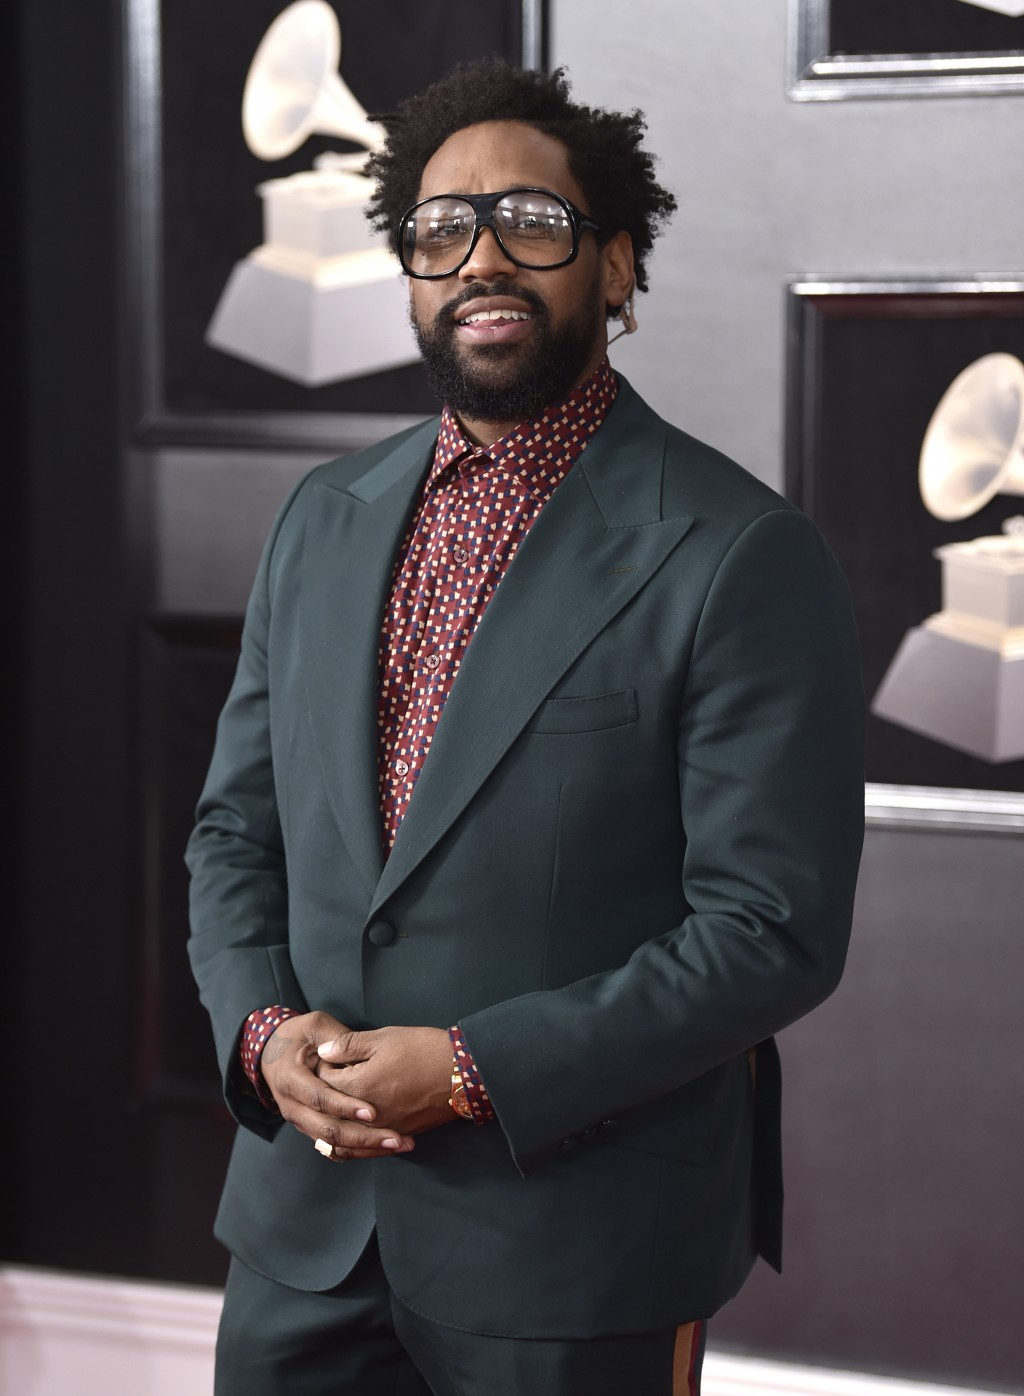 FILE - In this Jan. 28, 2018 file photo, PJ Morton of Maroon 5 arrives at the 60th annual Grammy Awards in New York. Morton is set to perform at next